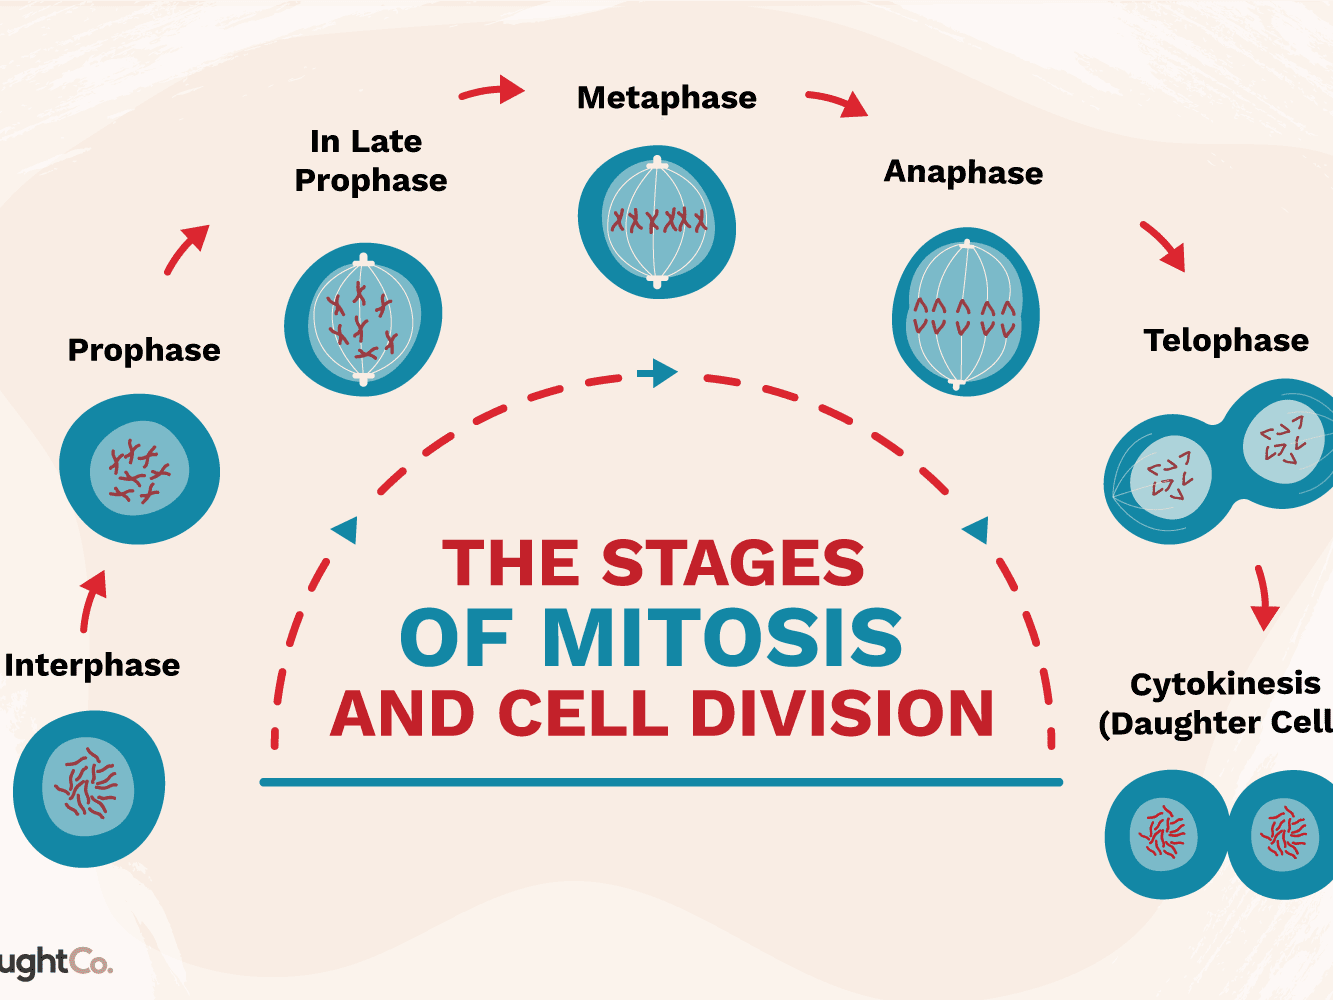 Genetic Makeup Of Daughter Cells In Mitosis